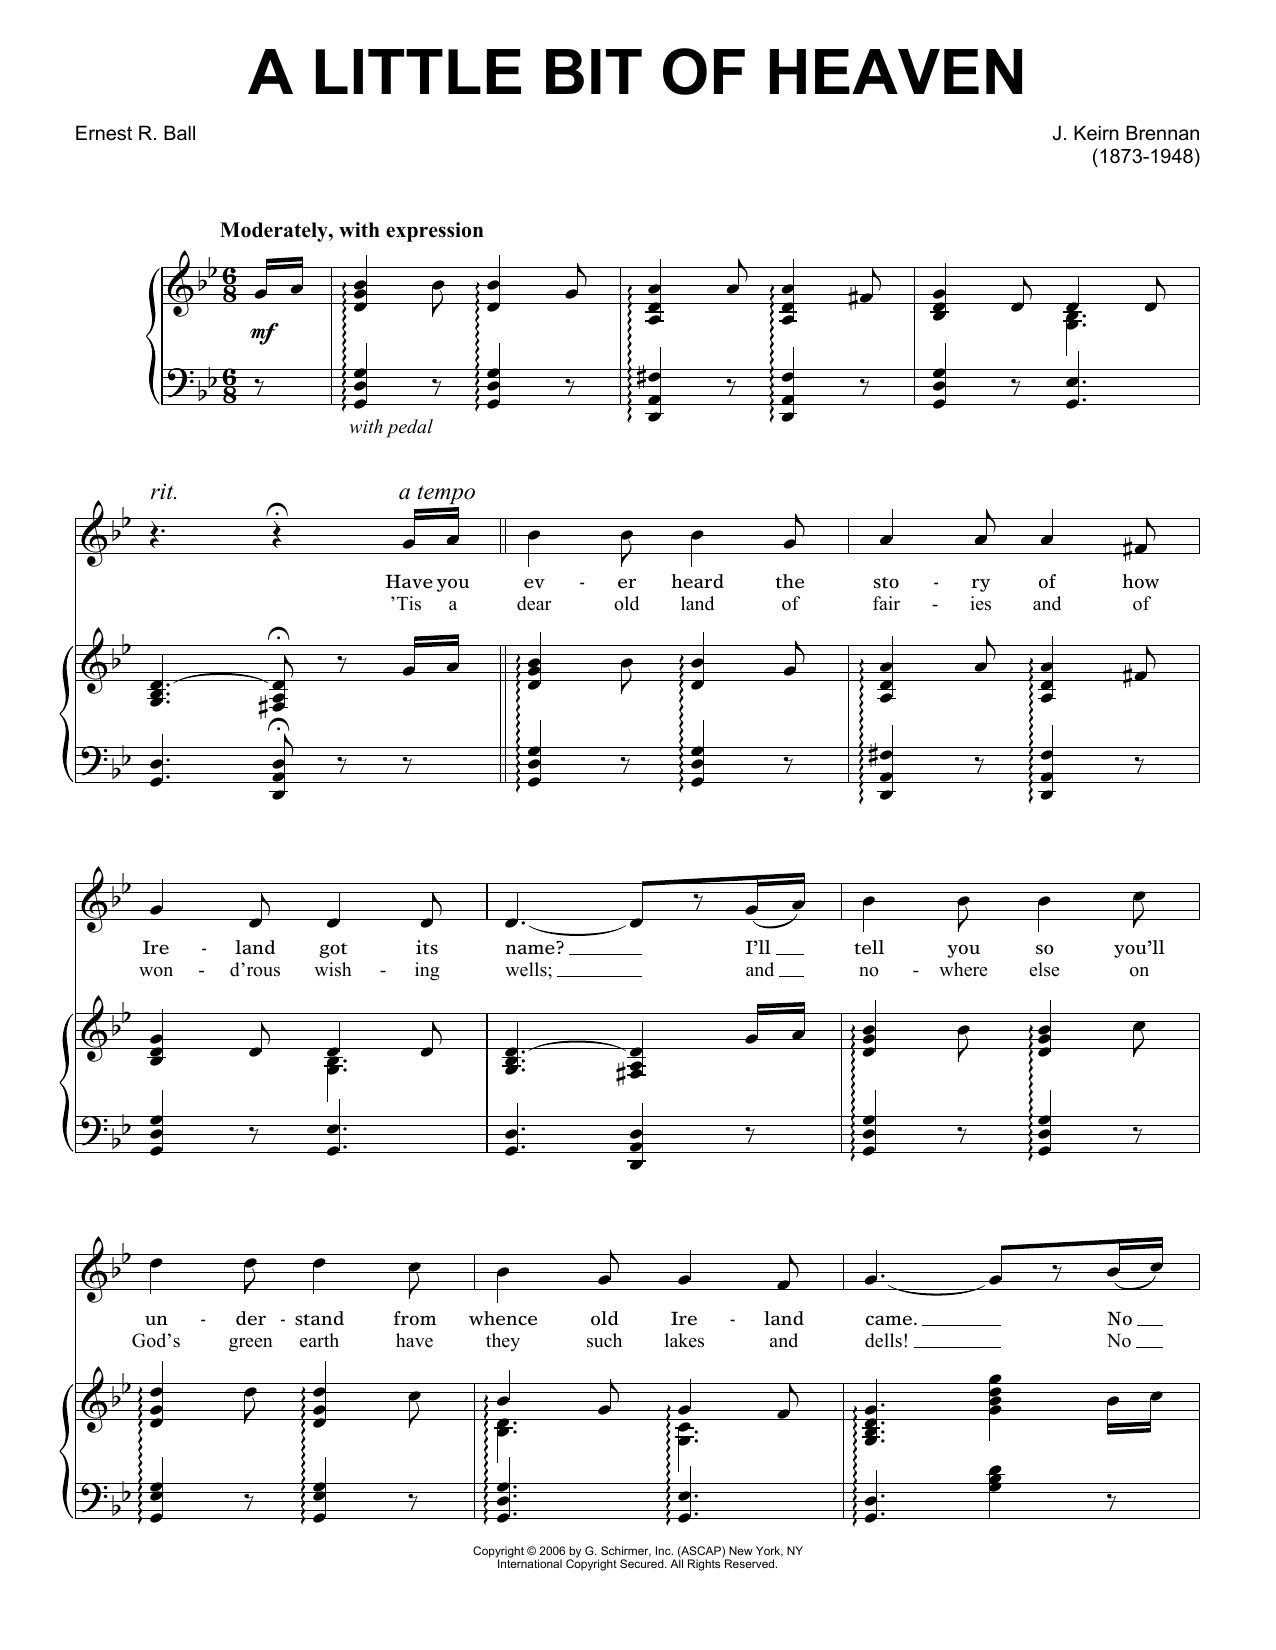 J. Keirn Brenan A Little Bit Of Heaven sheet music preview music notes and score for Piano, Vocal & Guitar (Right-Hand Melody) including 3 page(s)